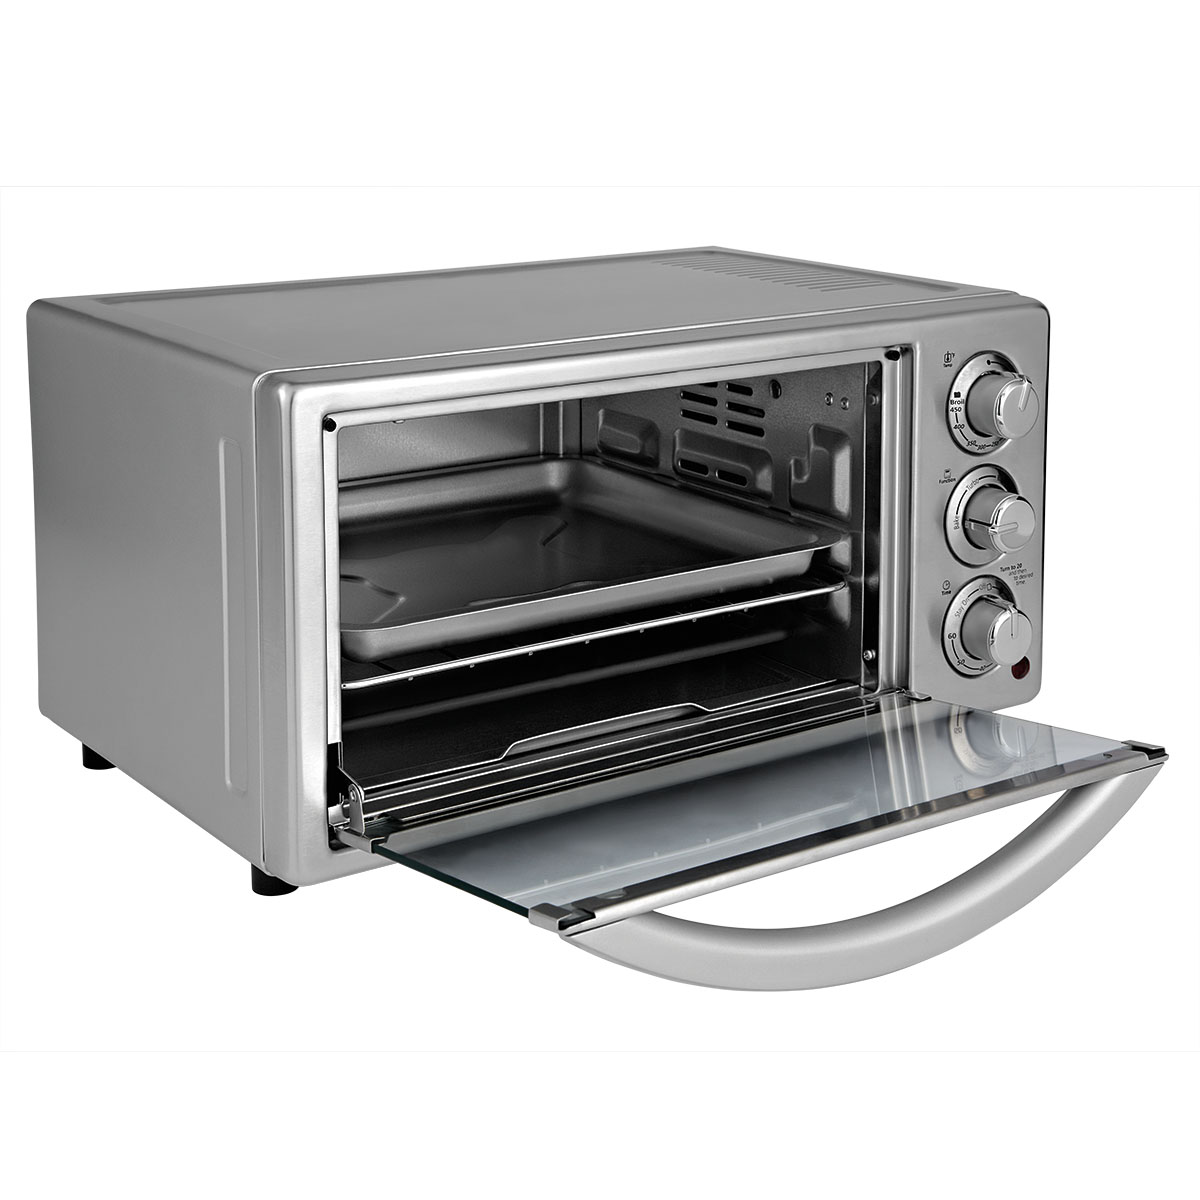 Oster 6 Slice Silver Toaster Oven